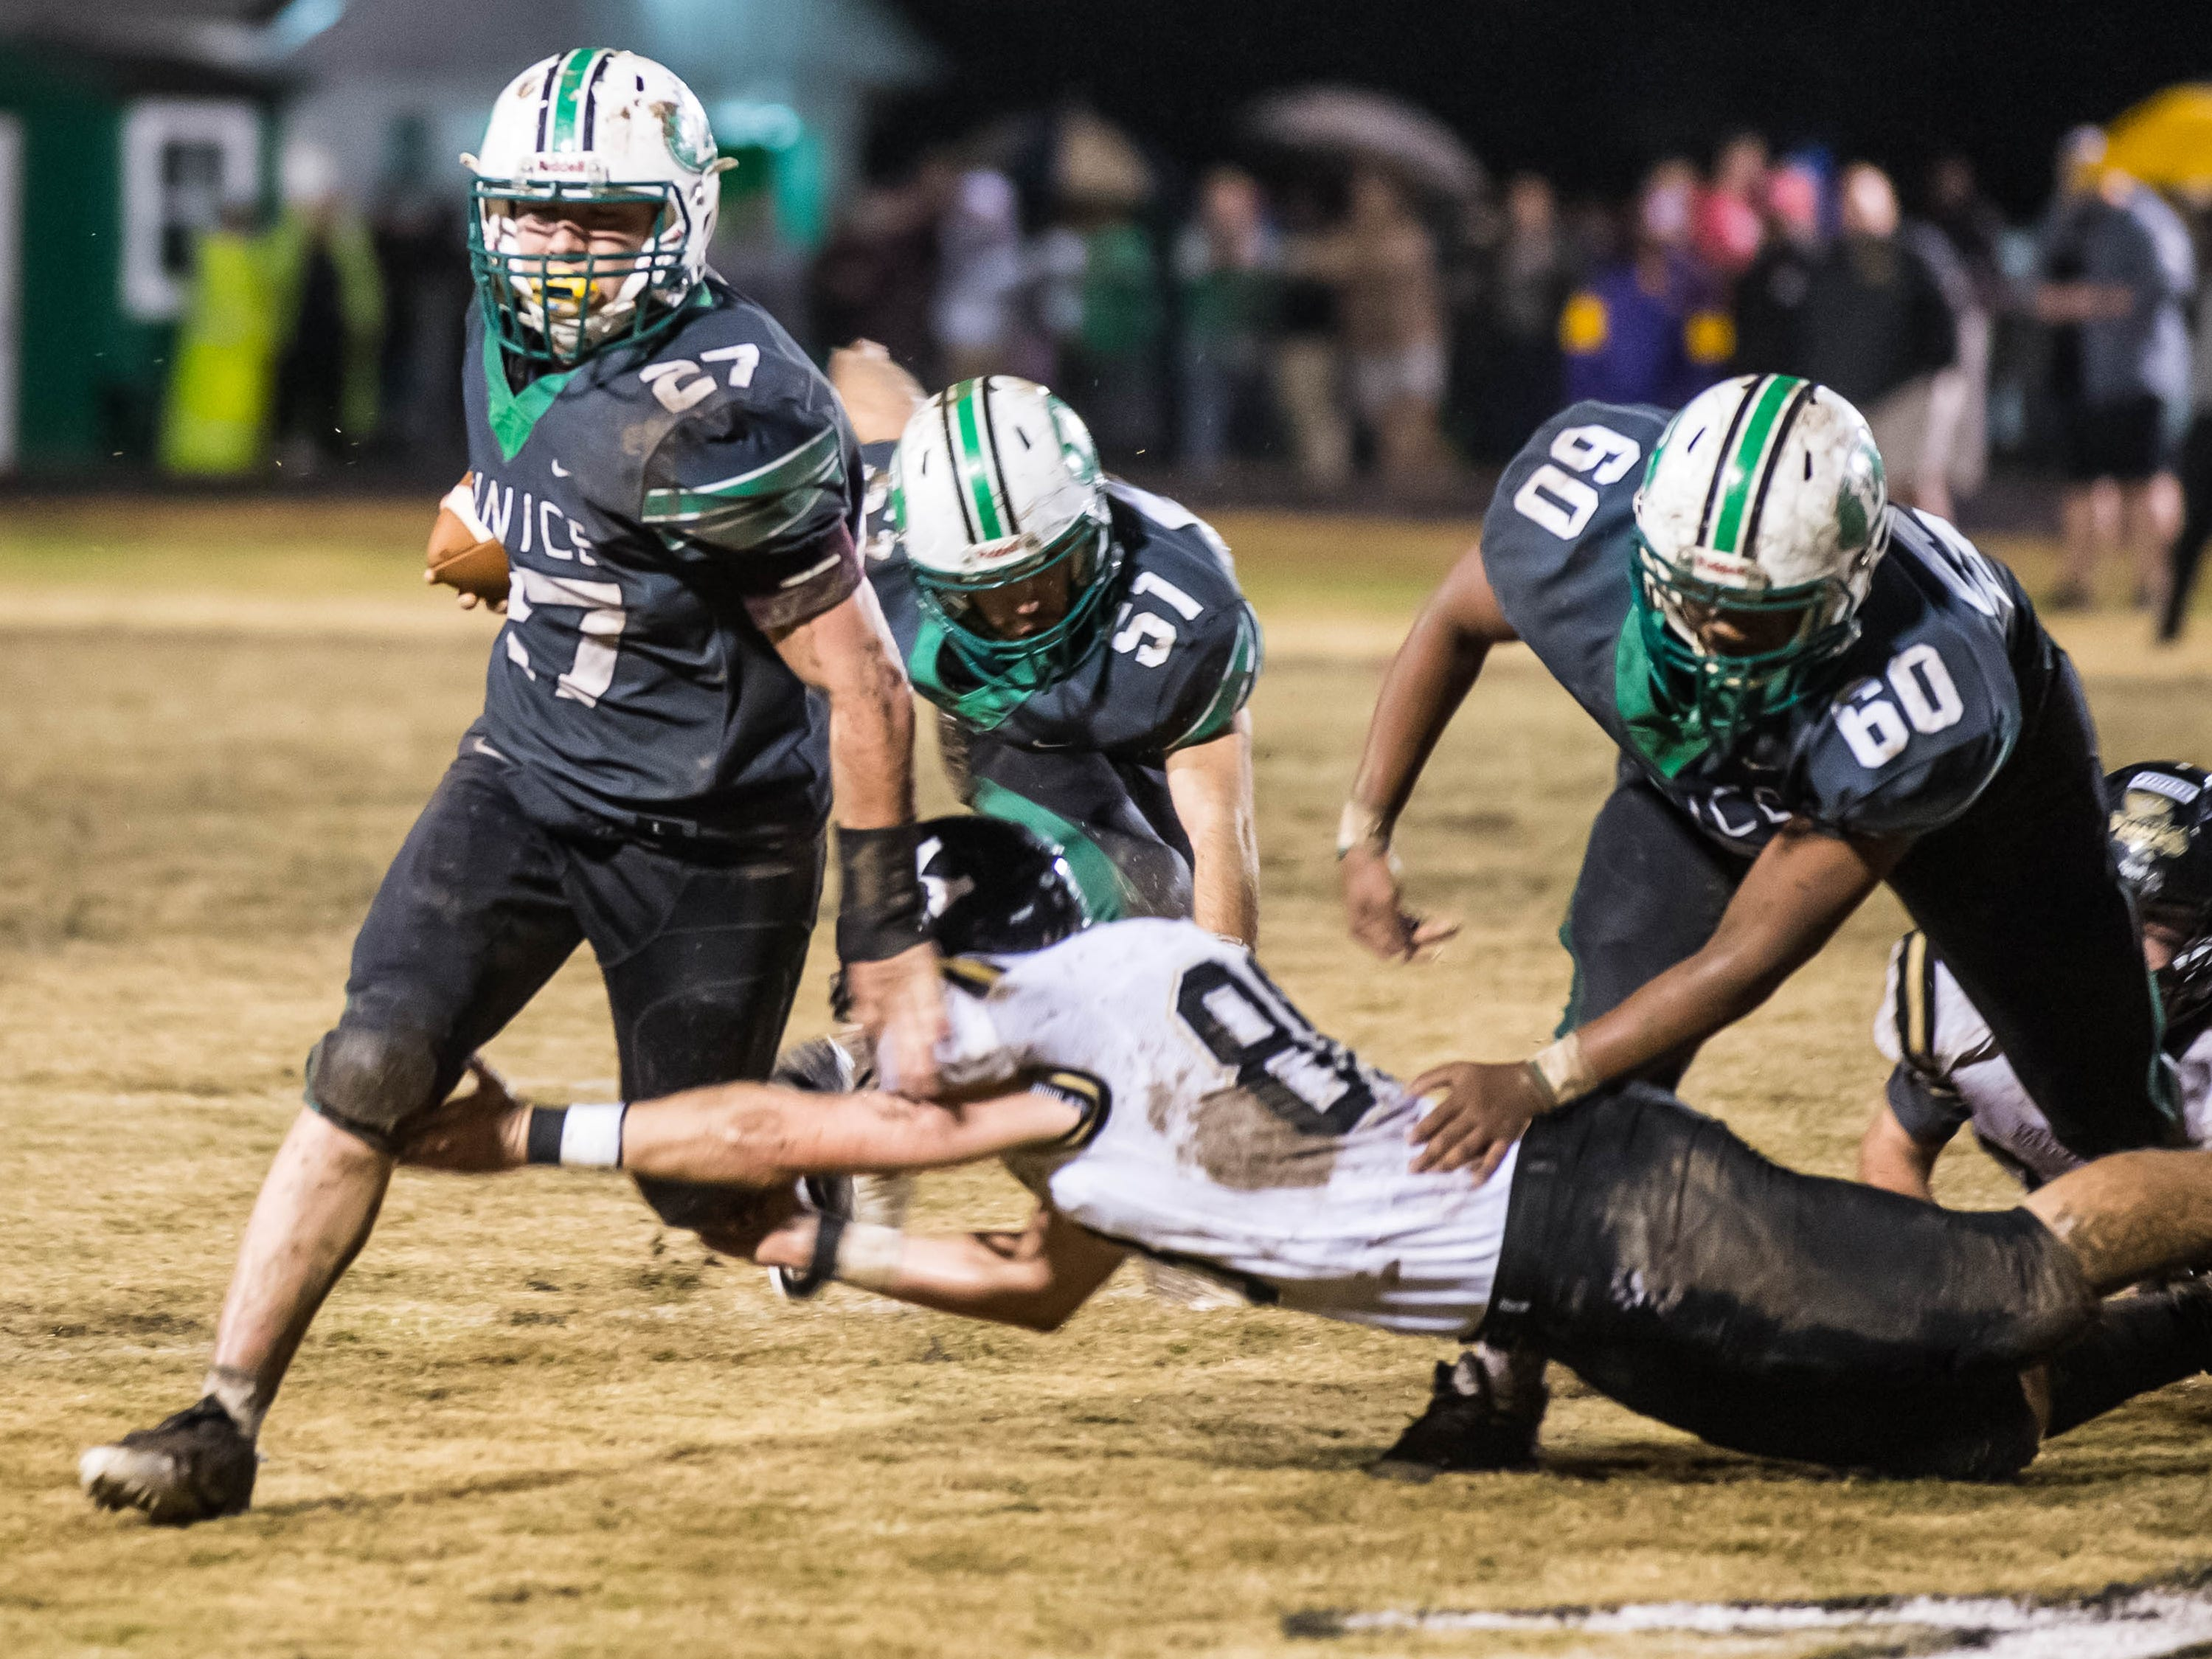 Euncie High's Avery Lee (27) breaks the tackle to get to the outside for another first down as the Bobcats take on the Kaplan High Pirates in the LHSAA Class 3A semifinal game Friday Nov. 30, 2018.